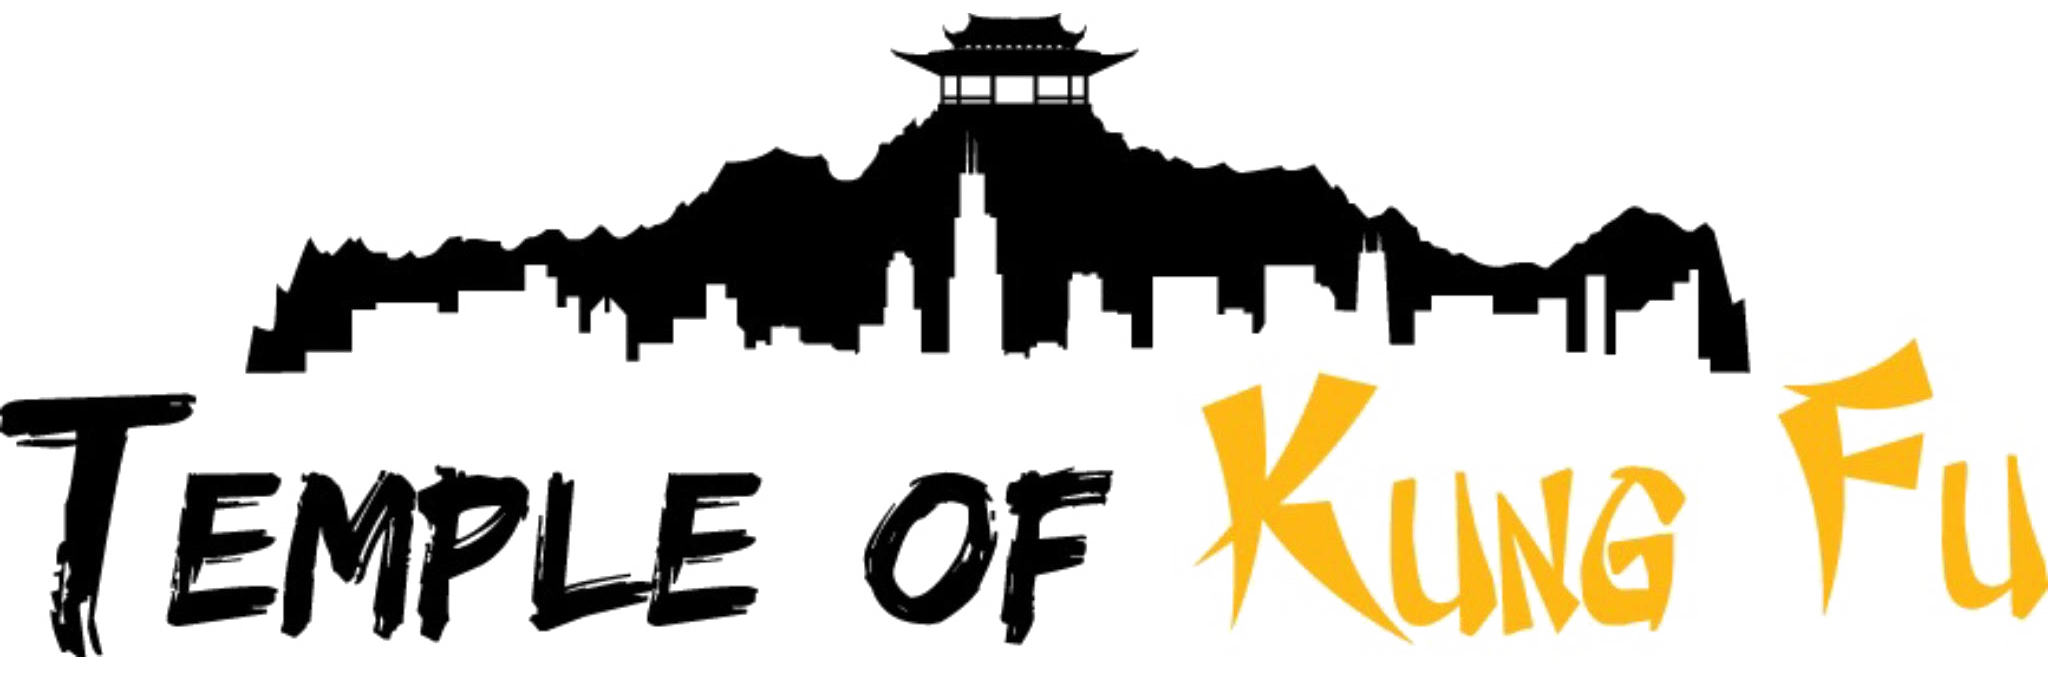 Temple of Kung Fu logo_trans.png